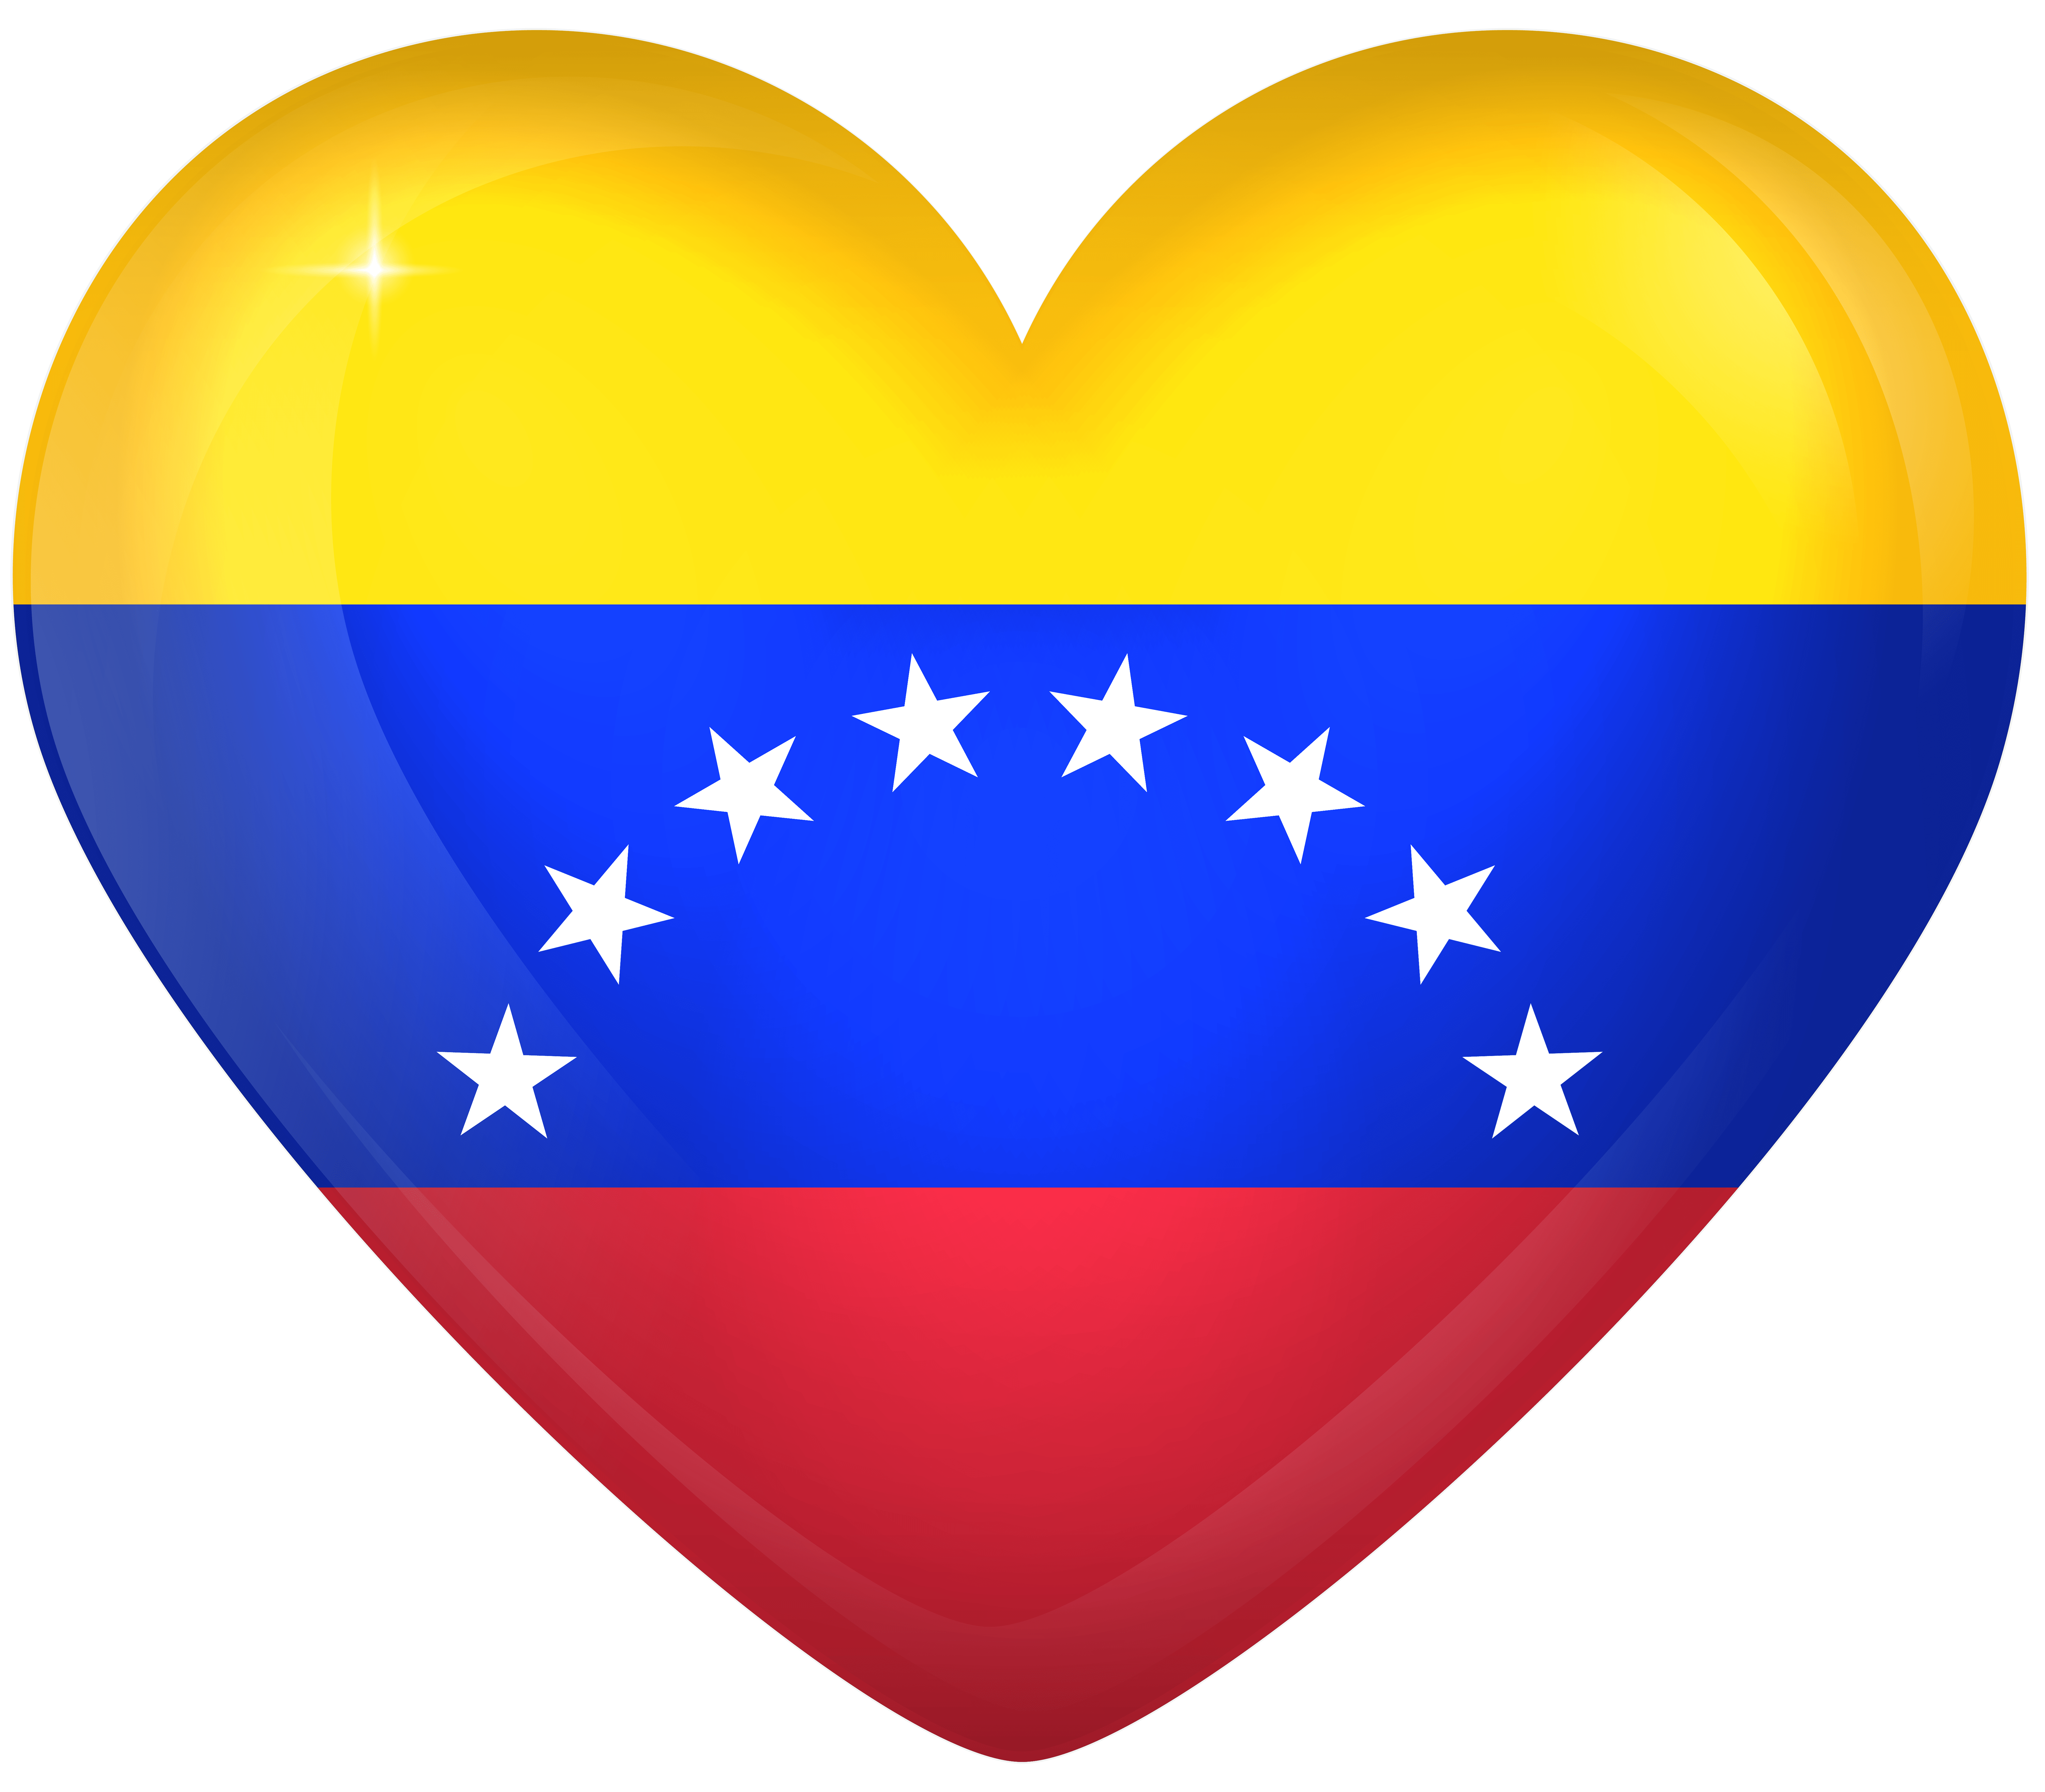 Venezuela Large Heart Flag | Gallery Yopriceville - High-Quality ...